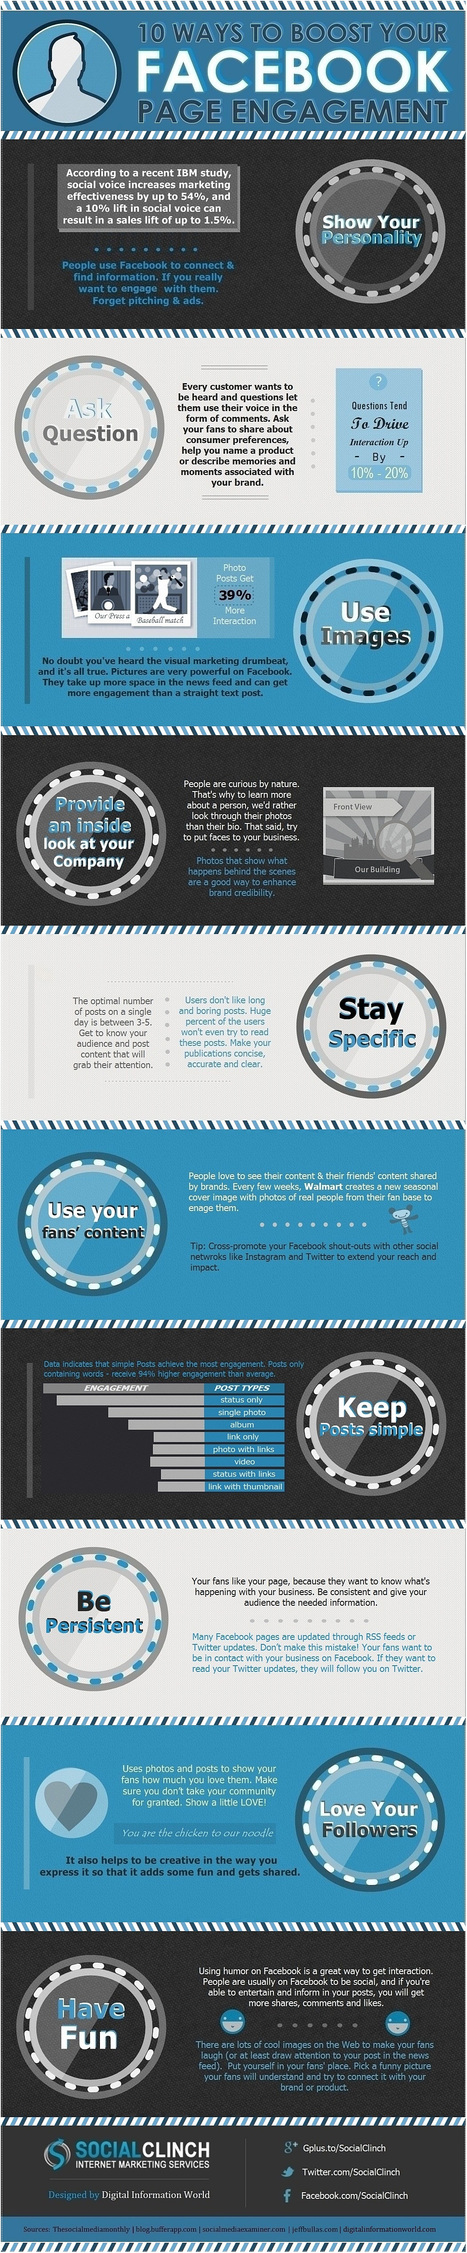 INFOGRAPHIC - 10 Ways To Boost Your Facebook Page Engagement | MarketingHits | Scoop.it